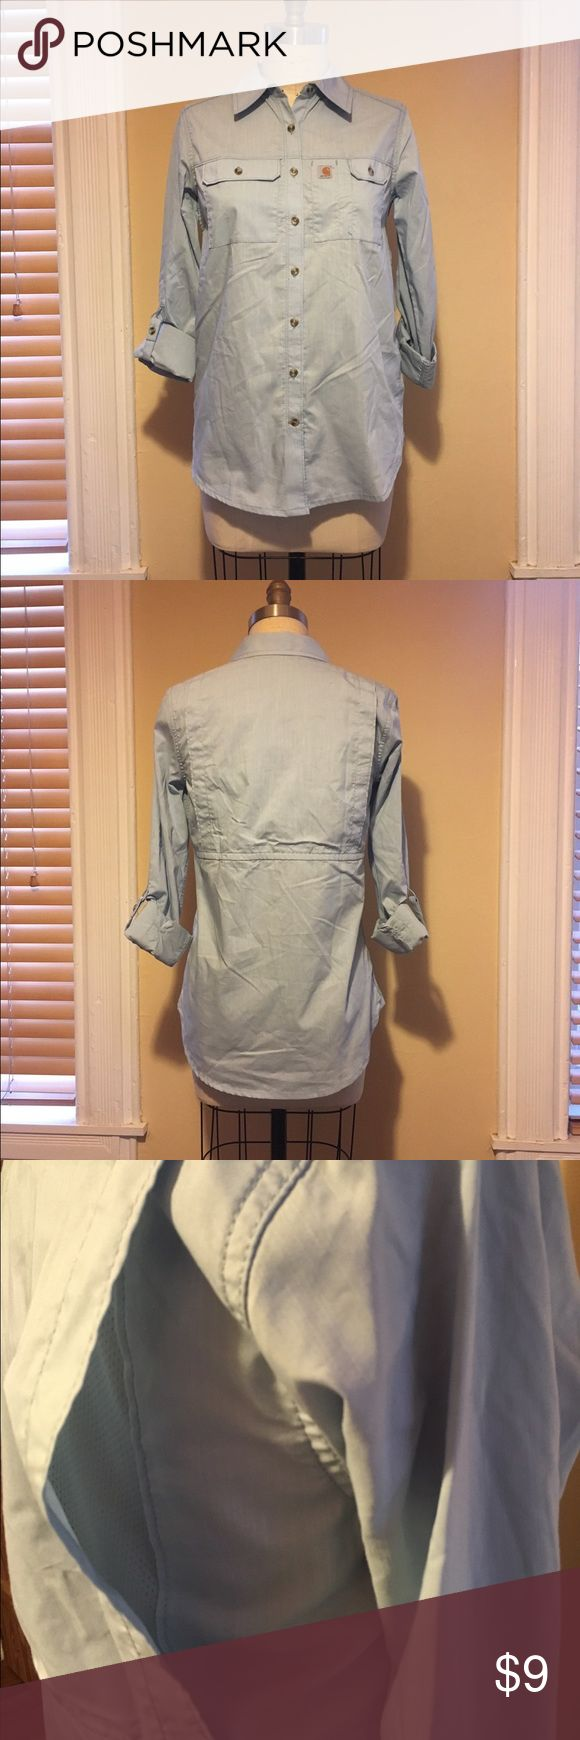 Carhartt women's button up work shirt Carhartt Ridgefield work shirt- 60/40 cotton/poly - vented mesh back for breathability - stain resistant material - functional front pockets - roll tab sleeve - like NEW, never worn Carhartt Tops Button Down Shirts